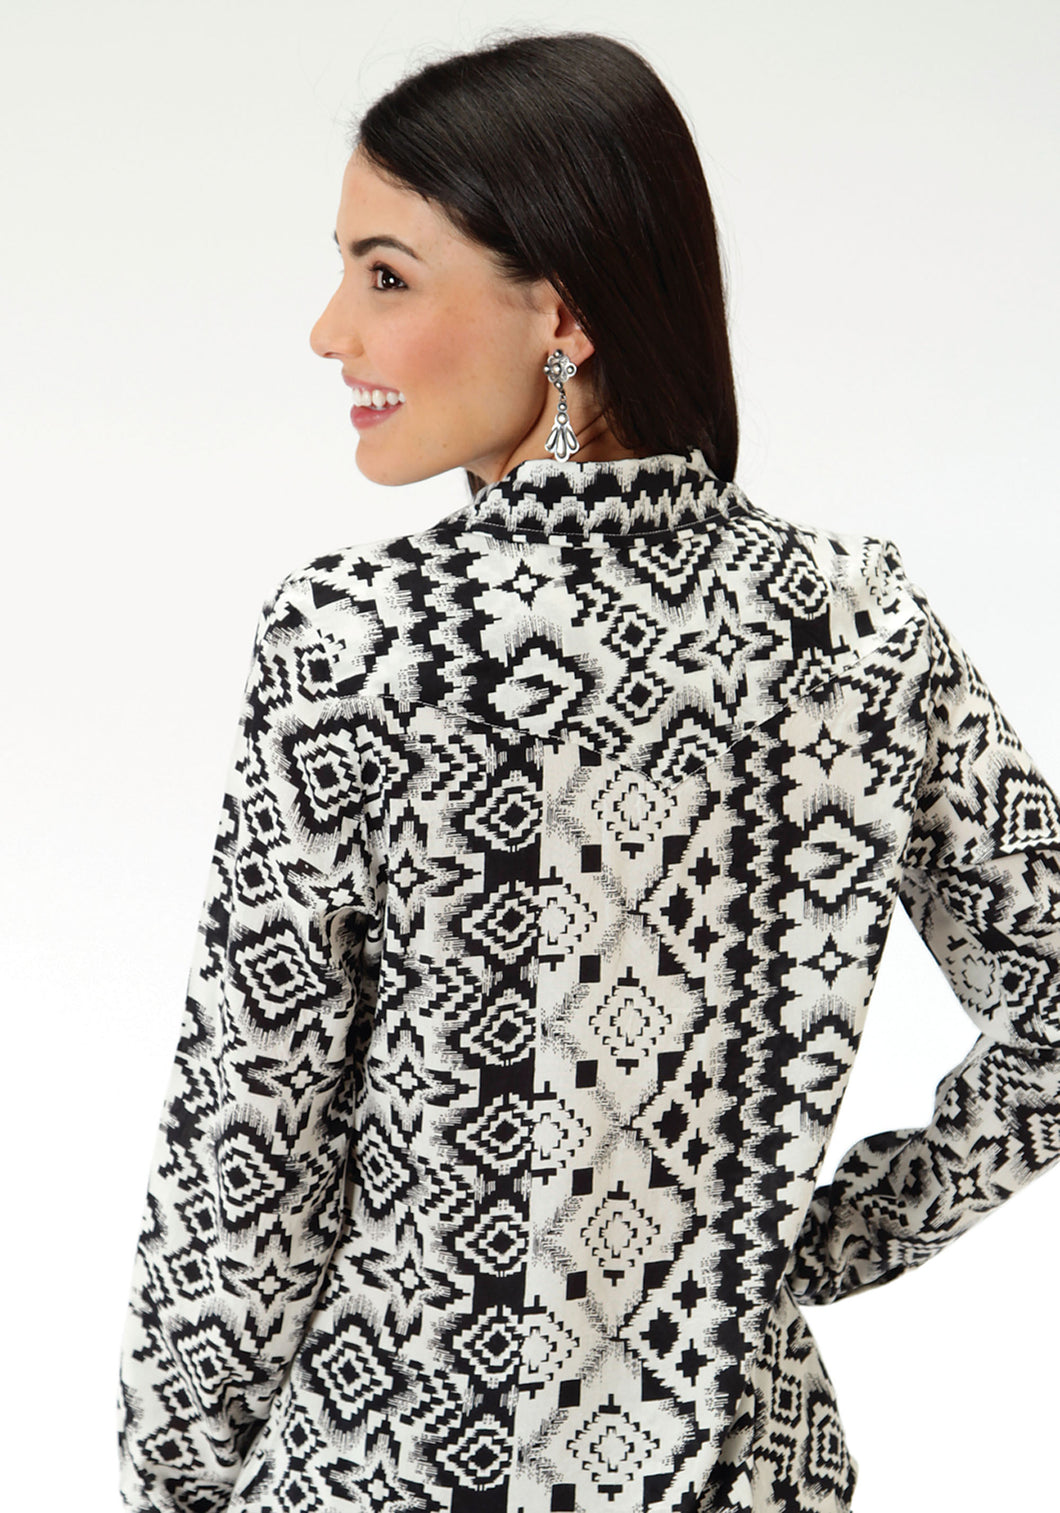 Five Star- Retro Pop 5star Womens Long Sleeve Shirt 0804 Aztec Print Shirt